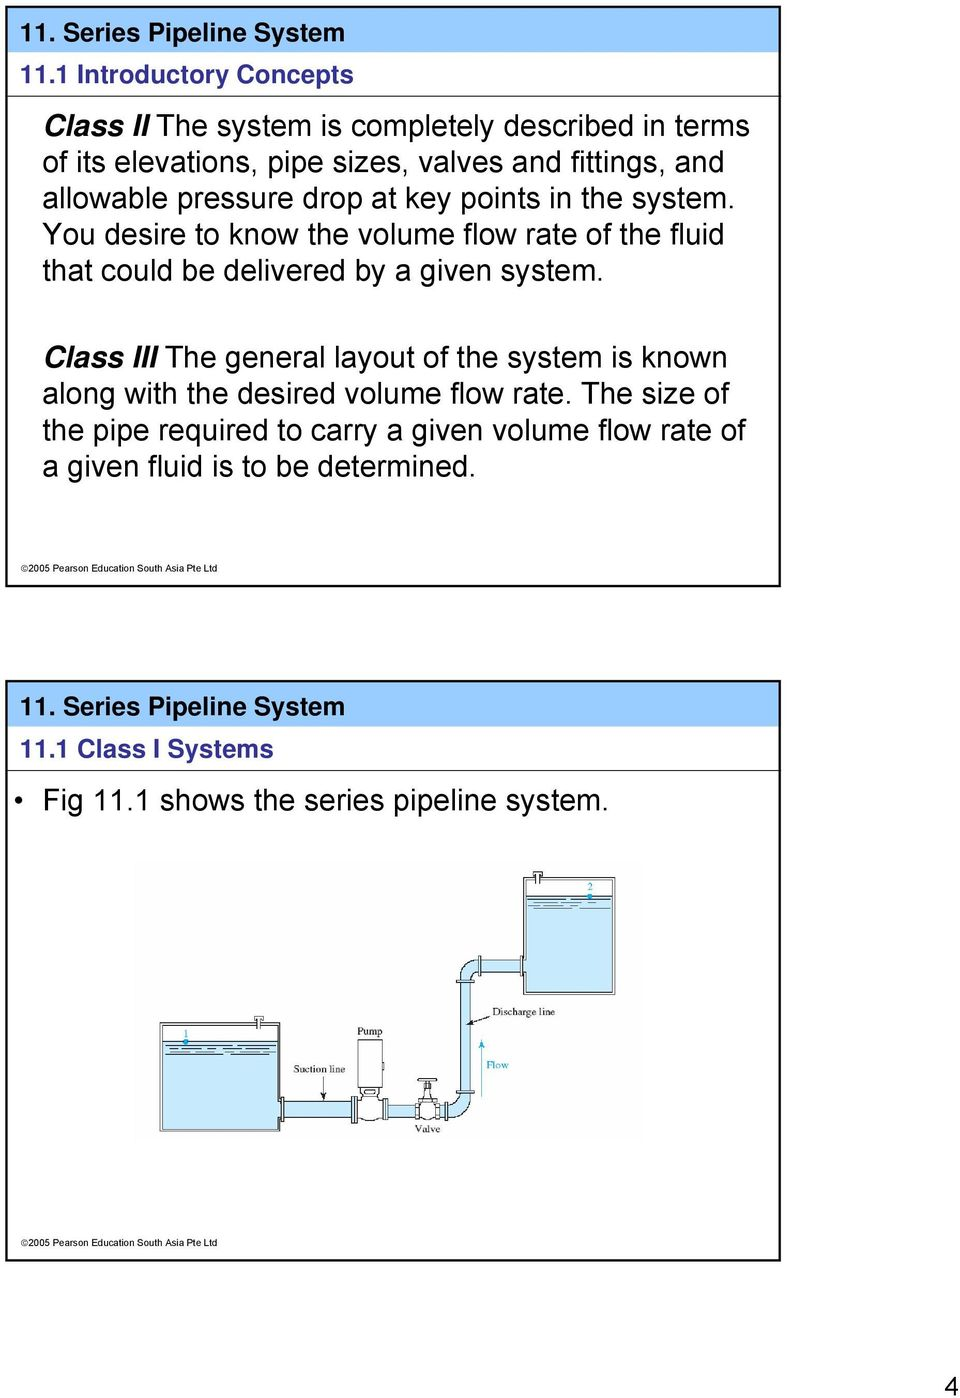 You desire to know the volume flow rate of the fluid that could be delivered by a given system.